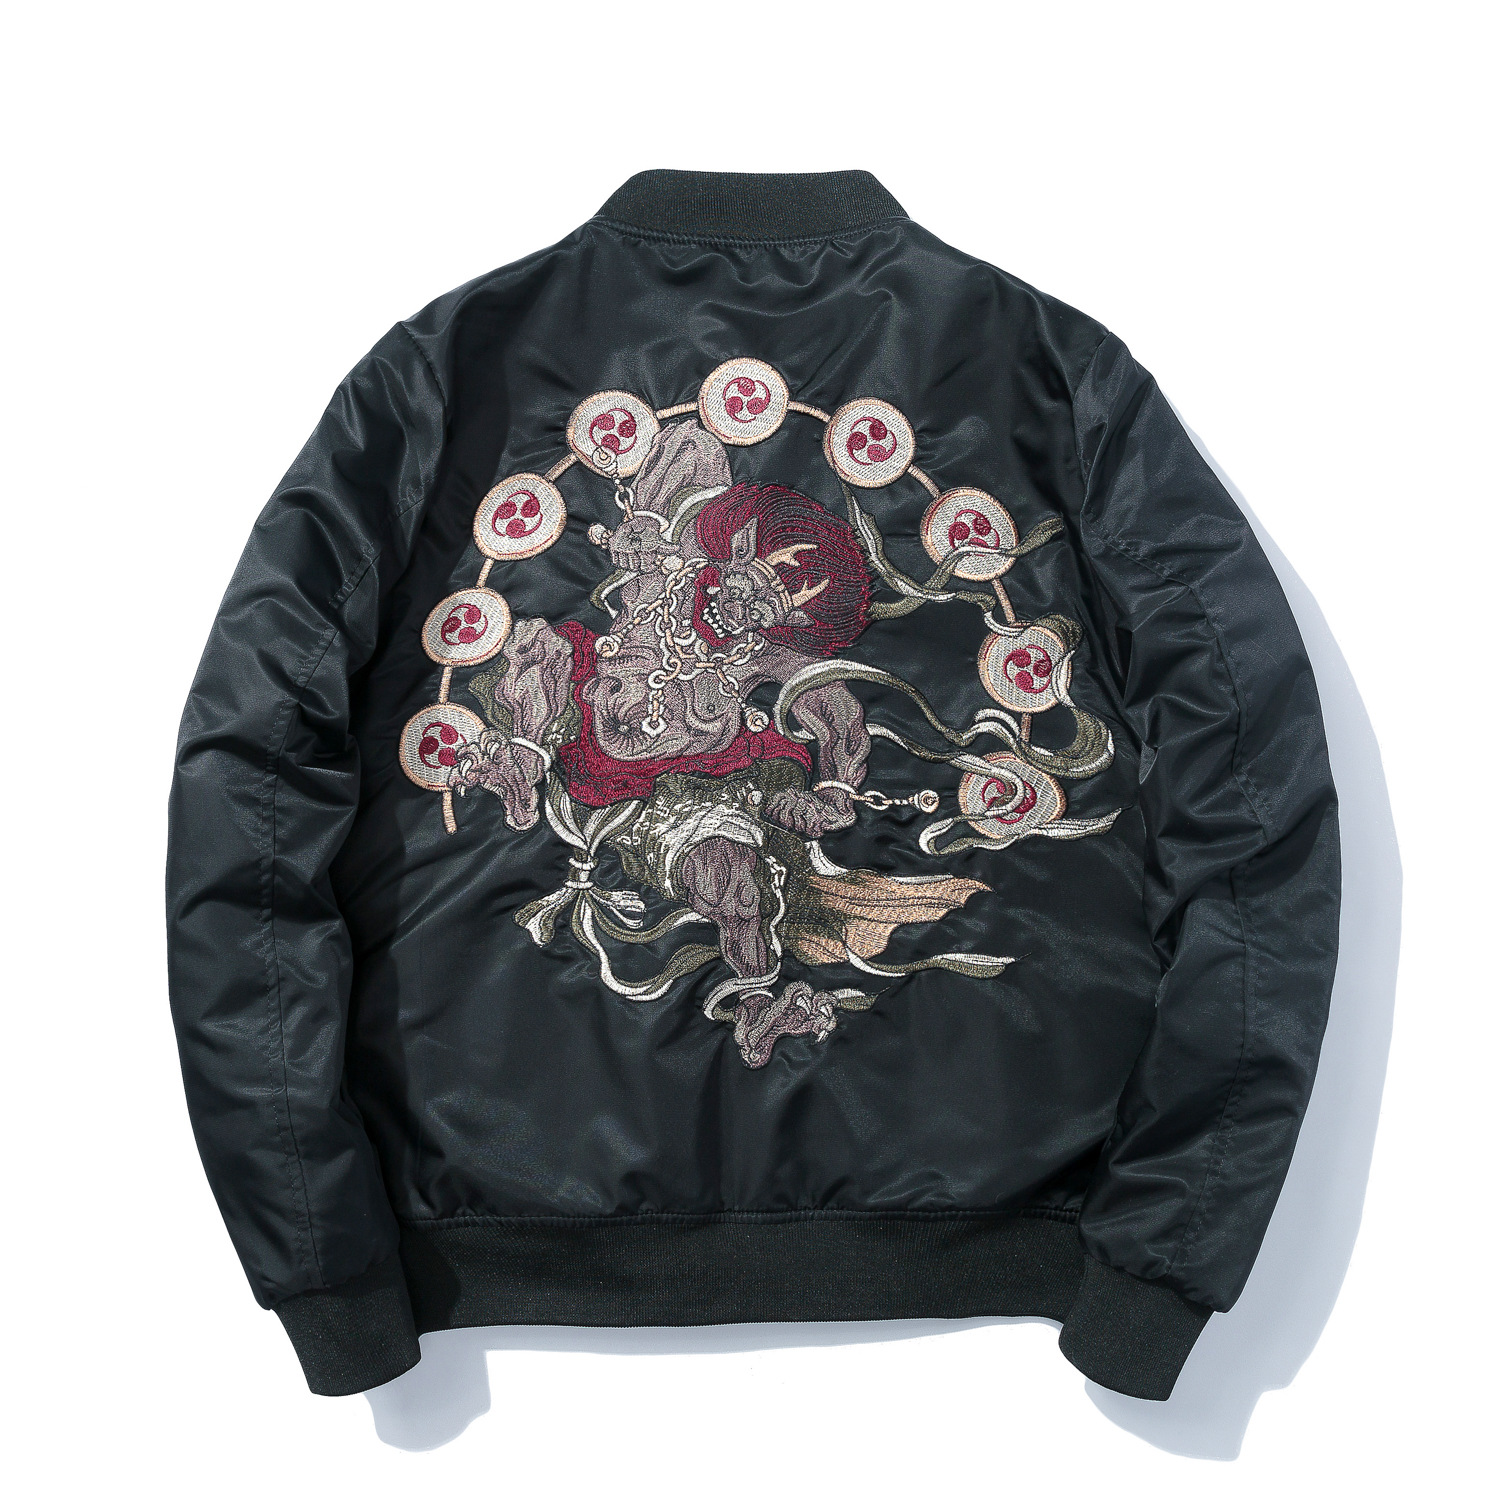 b38a3f8fd US $50.9 |Winter Men Bomber Jacket Japanese Stand Collar Anime Embroidery  Zipper Thick and Thin Polit Jackets Harajuku Style Streetwear-in Jackets ...